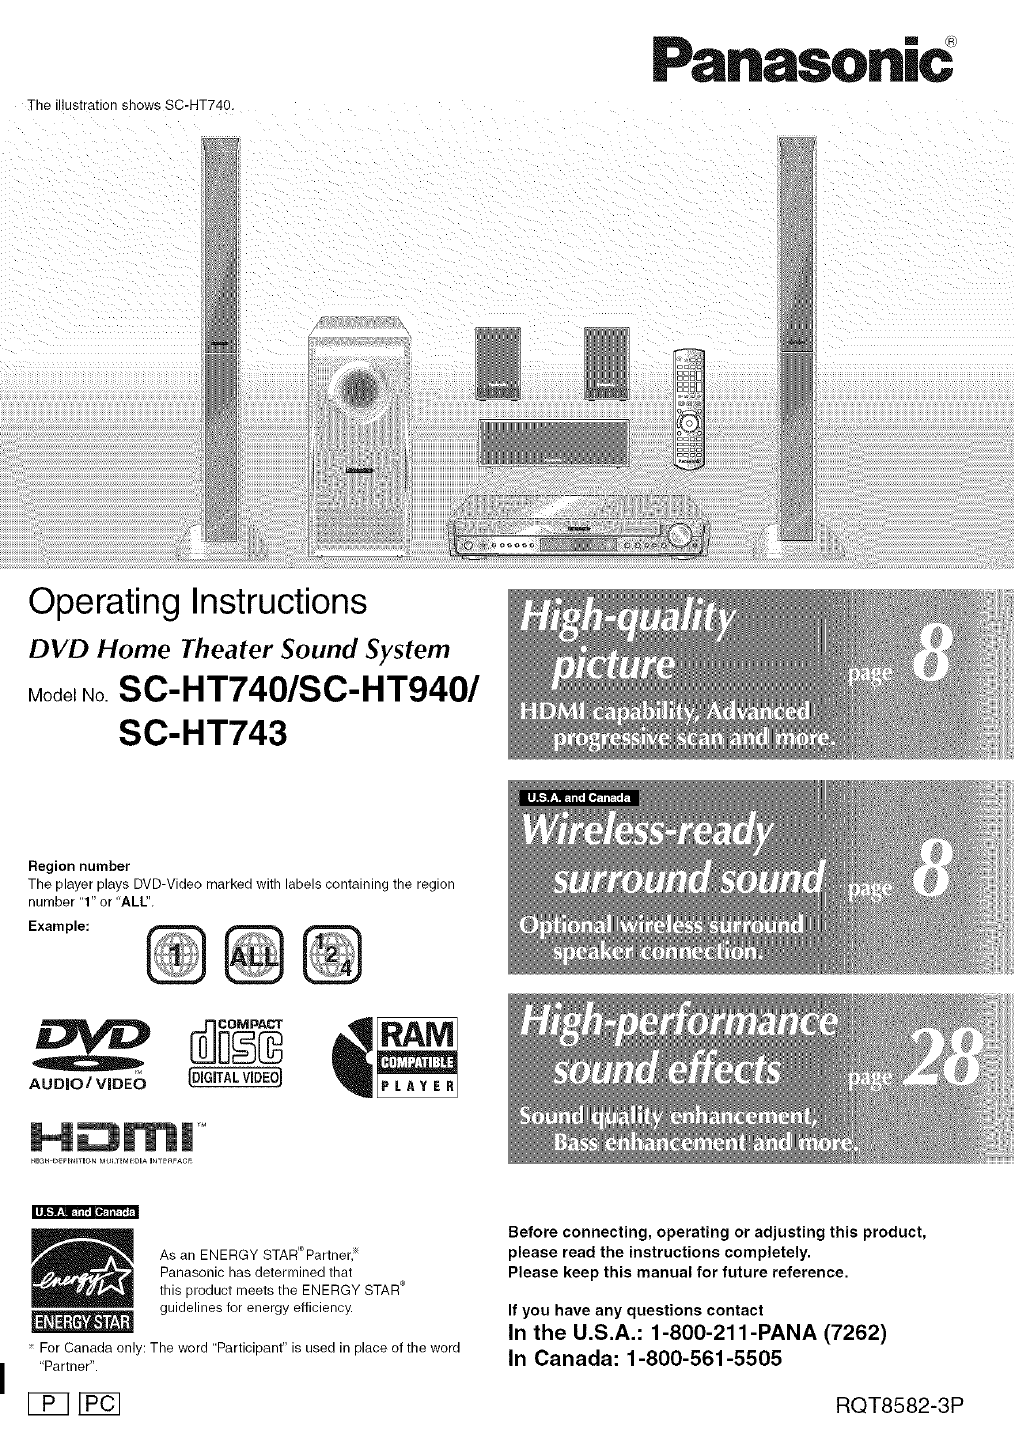 panasonic home theater system sc ht940 user guide manualsonline com rh audio manualsonline com panasonic theater system manual n2qayb panasonic theater system manual n2qayb